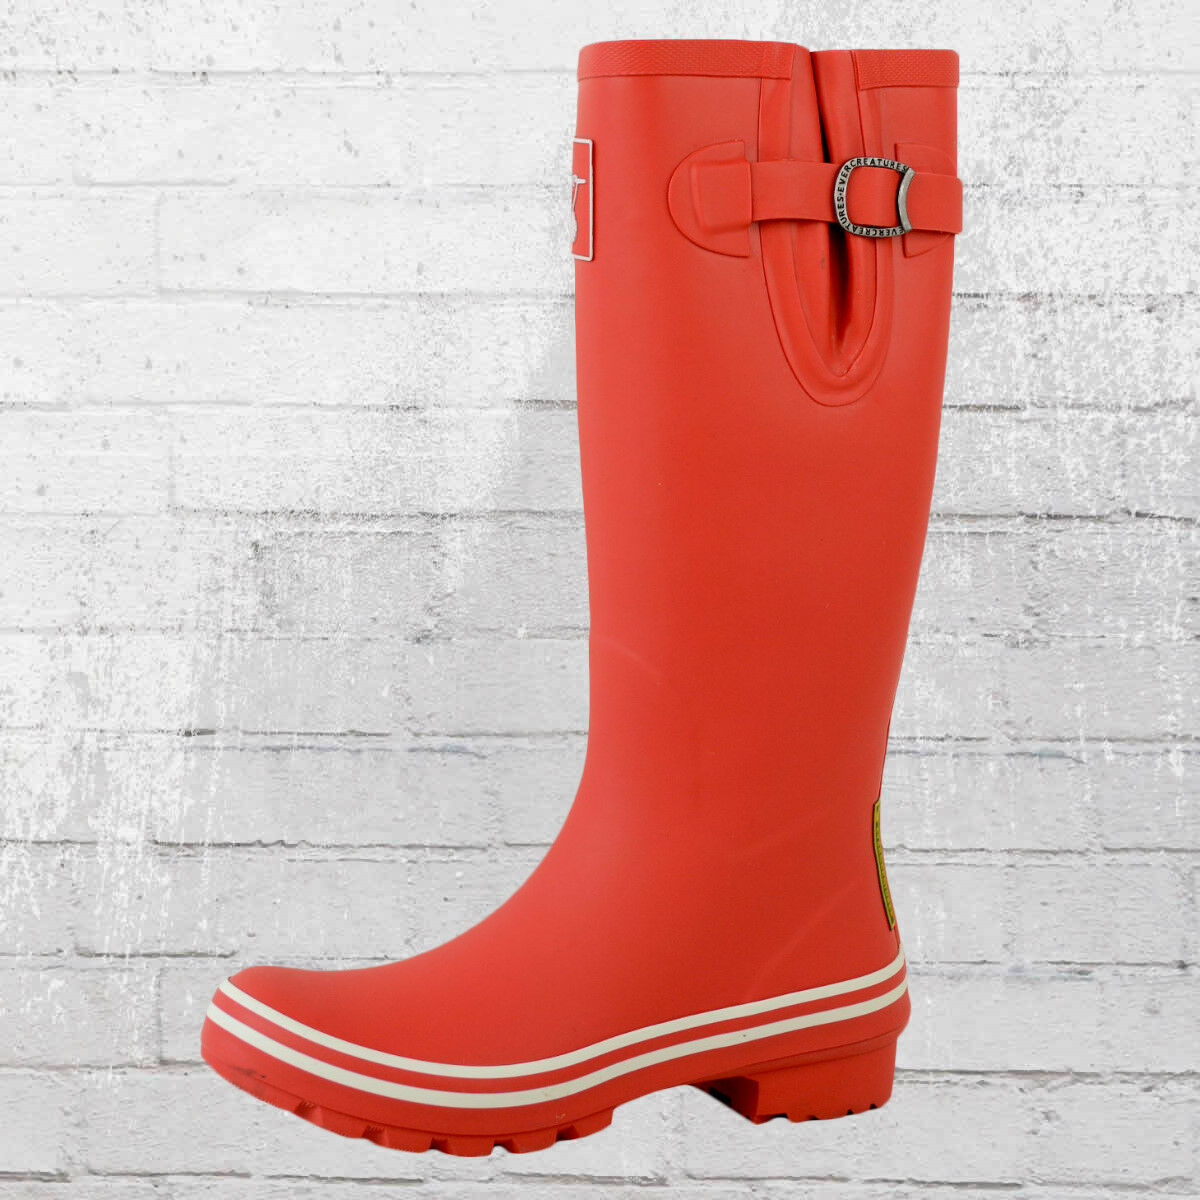 Evercreatures Donna Stivali di gomma Plain Red AND WHITE ROSSO BIANCO Wellies Wellington